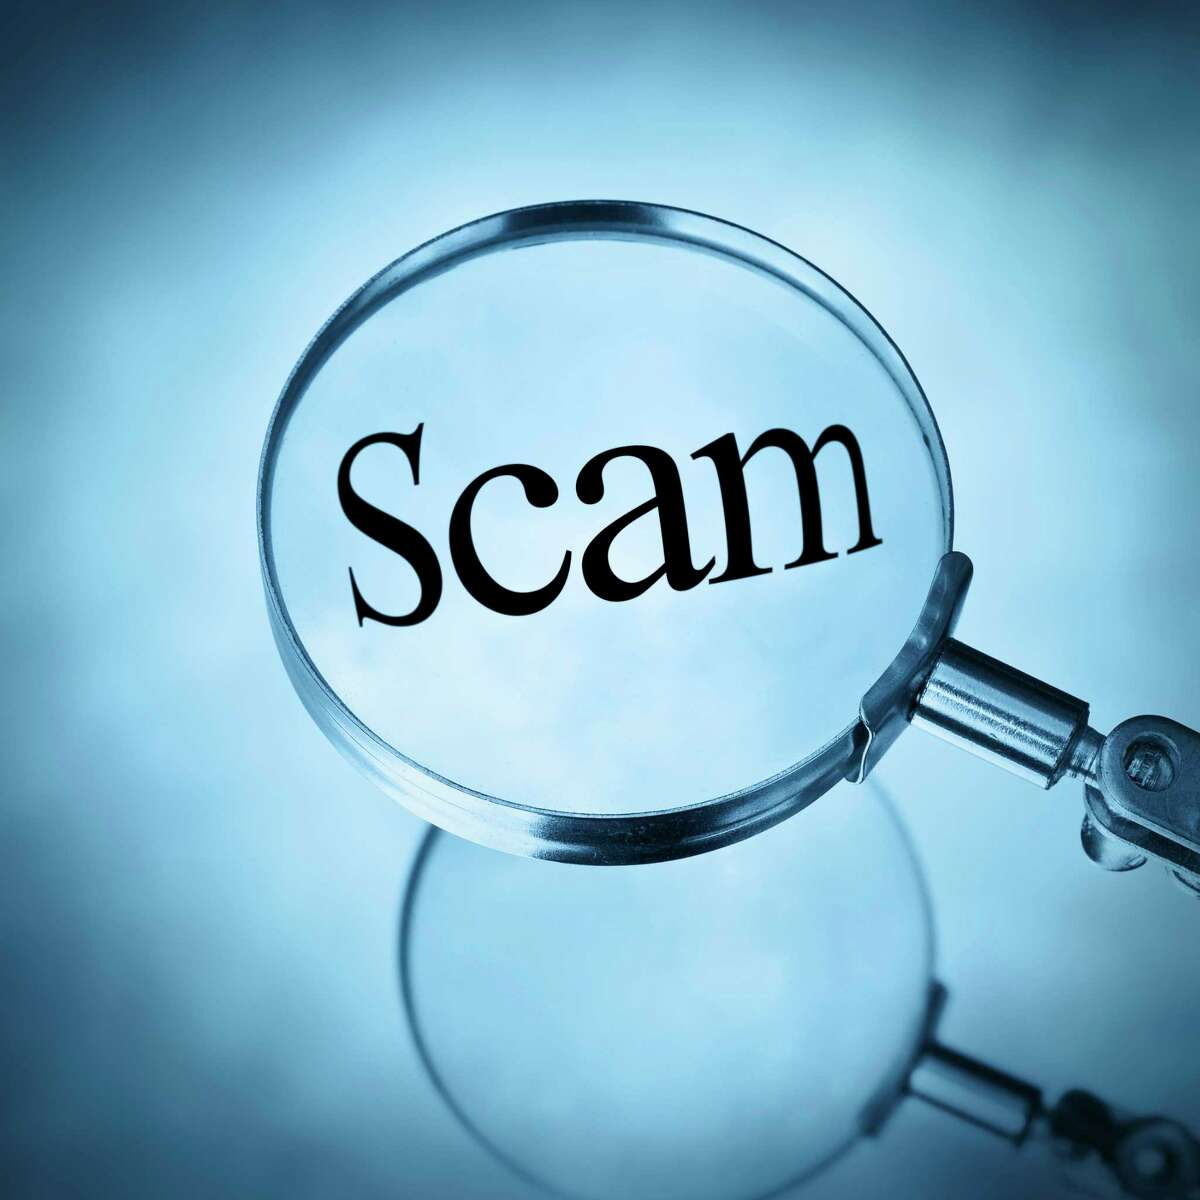 The office of the attorney general warns people of a food assistance scam coming through texts. (Courtesy Photo/Getty Images)